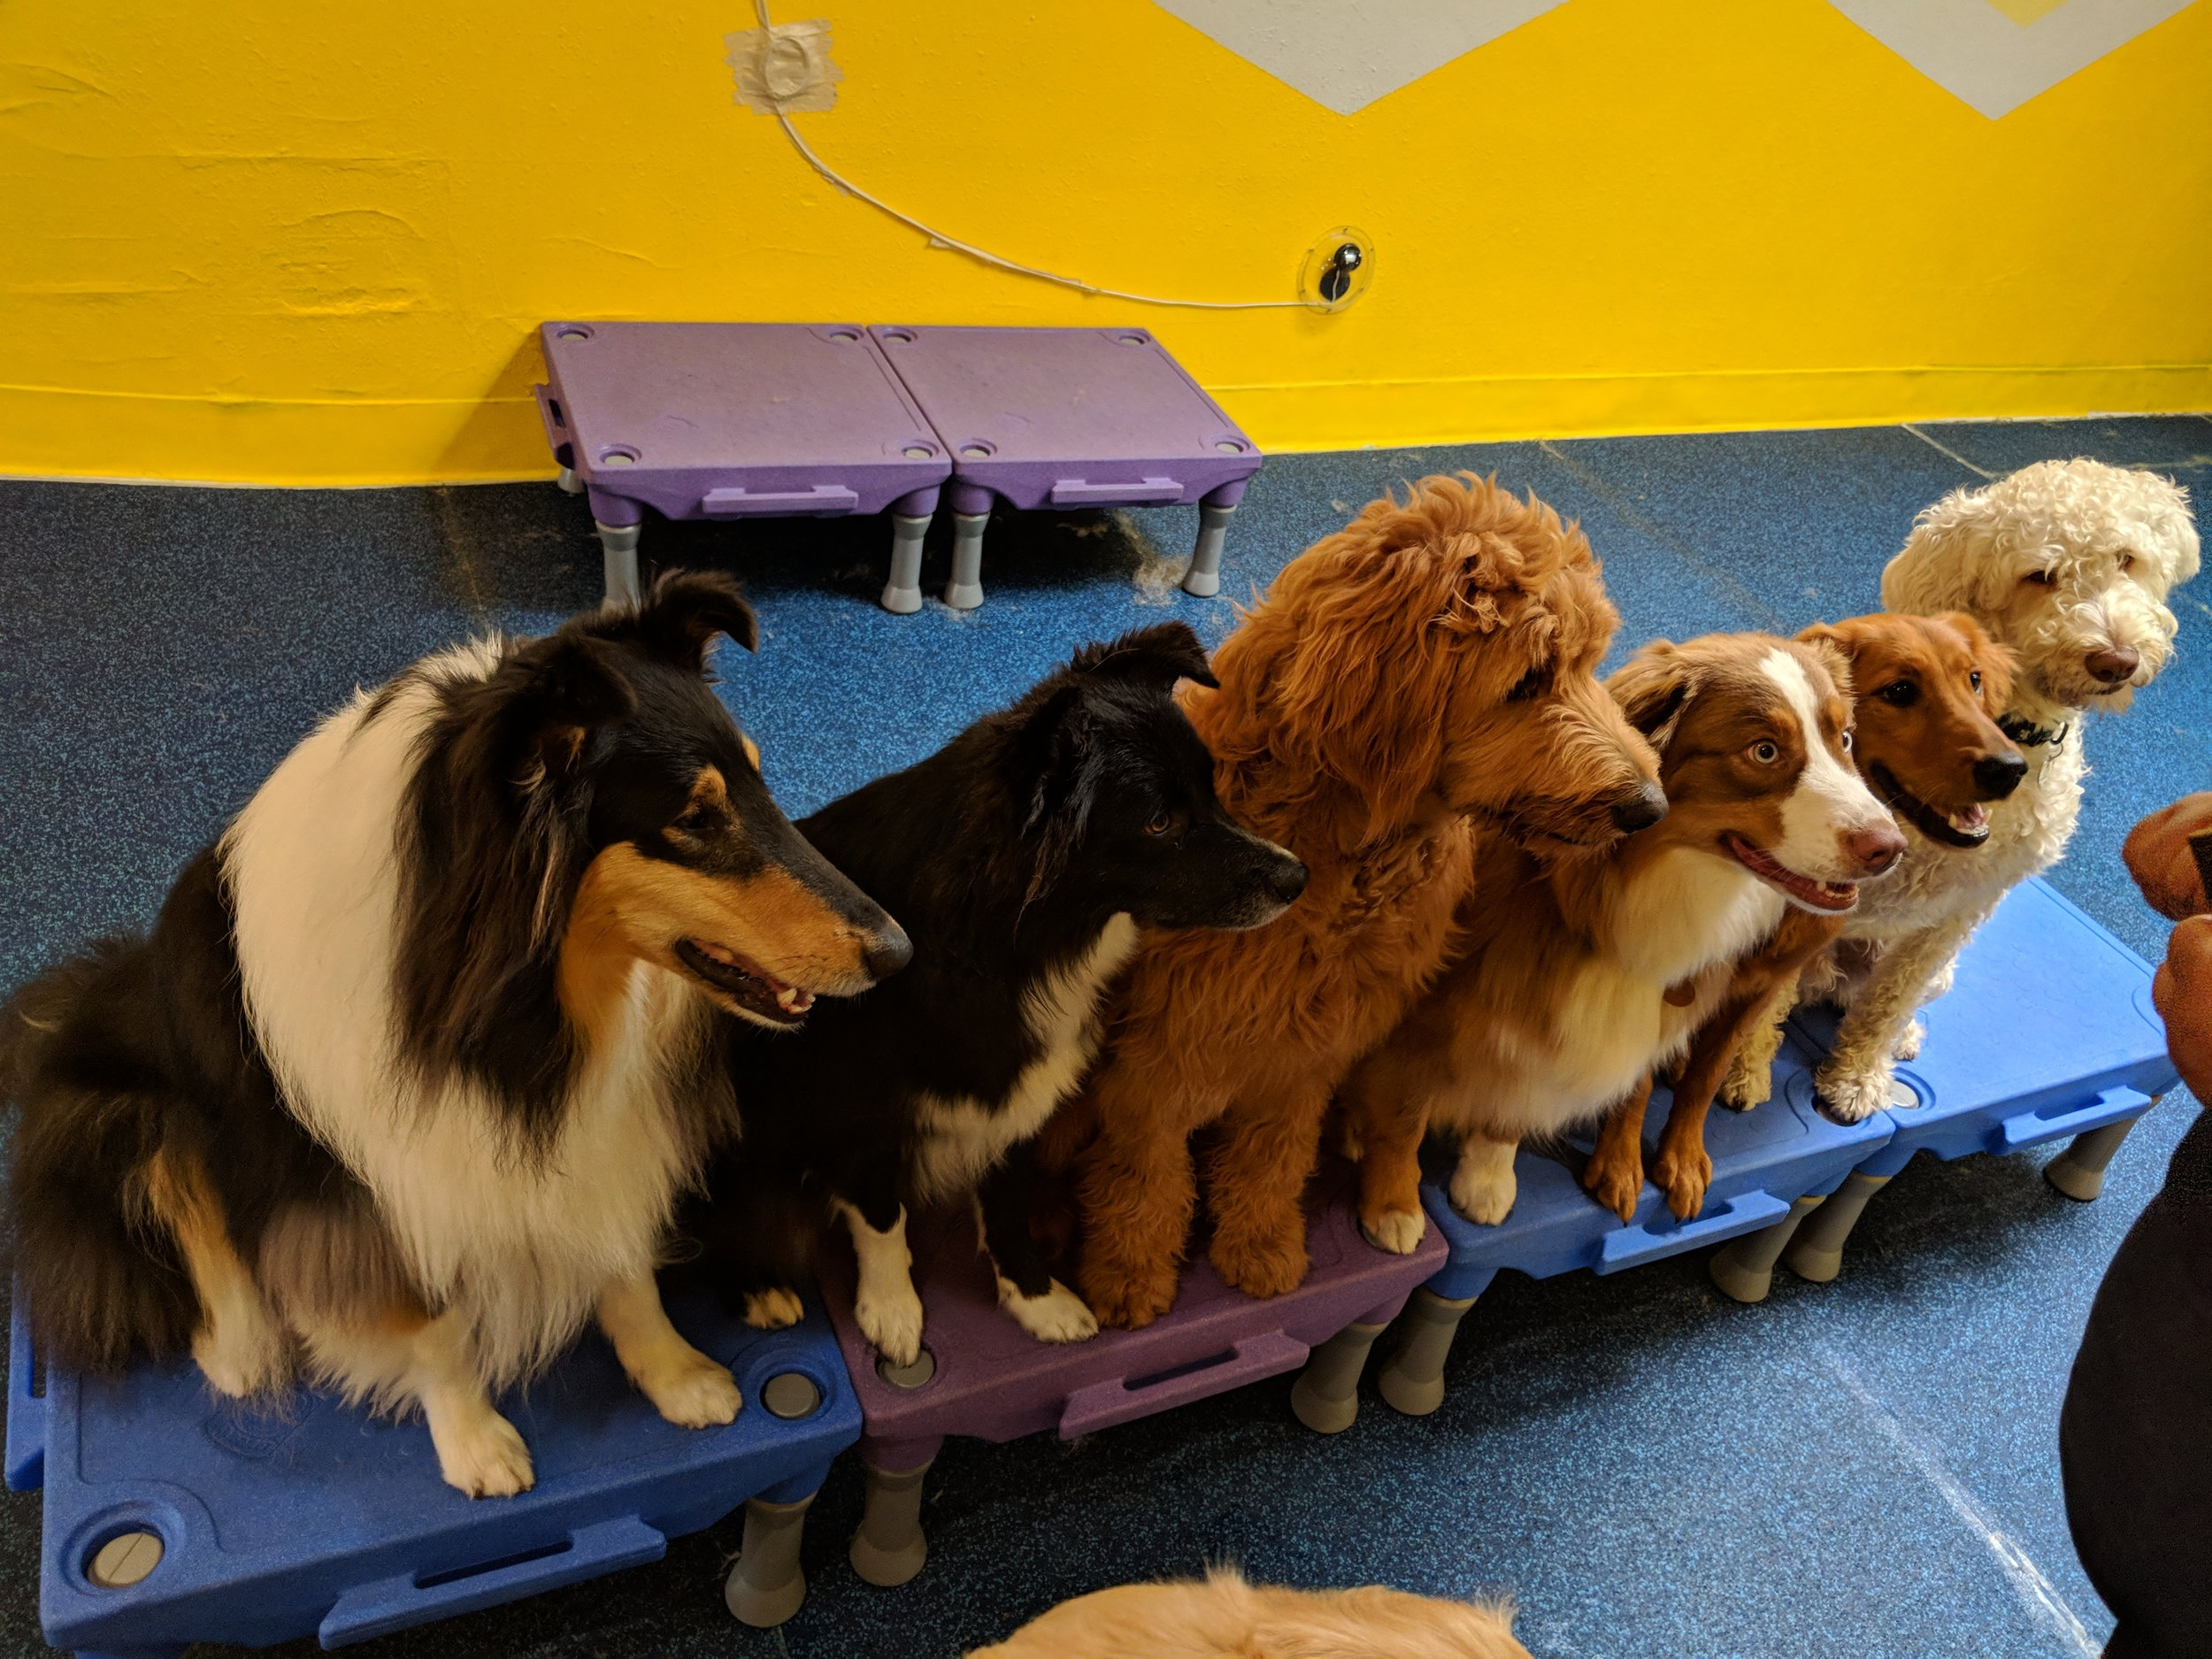 Positive Reinforcement - We believe dogs are more than just wrestle-monsters. They have clever minds, quick wits, and inspiring curiosity. These are important elements of each dog's personality, and we incorporate games and activities throughout the day to supplement their daily exercise with a broad spectrum of stimulation. We do not use force-based methods of dog handling such as intimidation, punishment, and infliction of pain. Instead, we keep it safe and fun, with delicious rewards for paw-fect behavior!